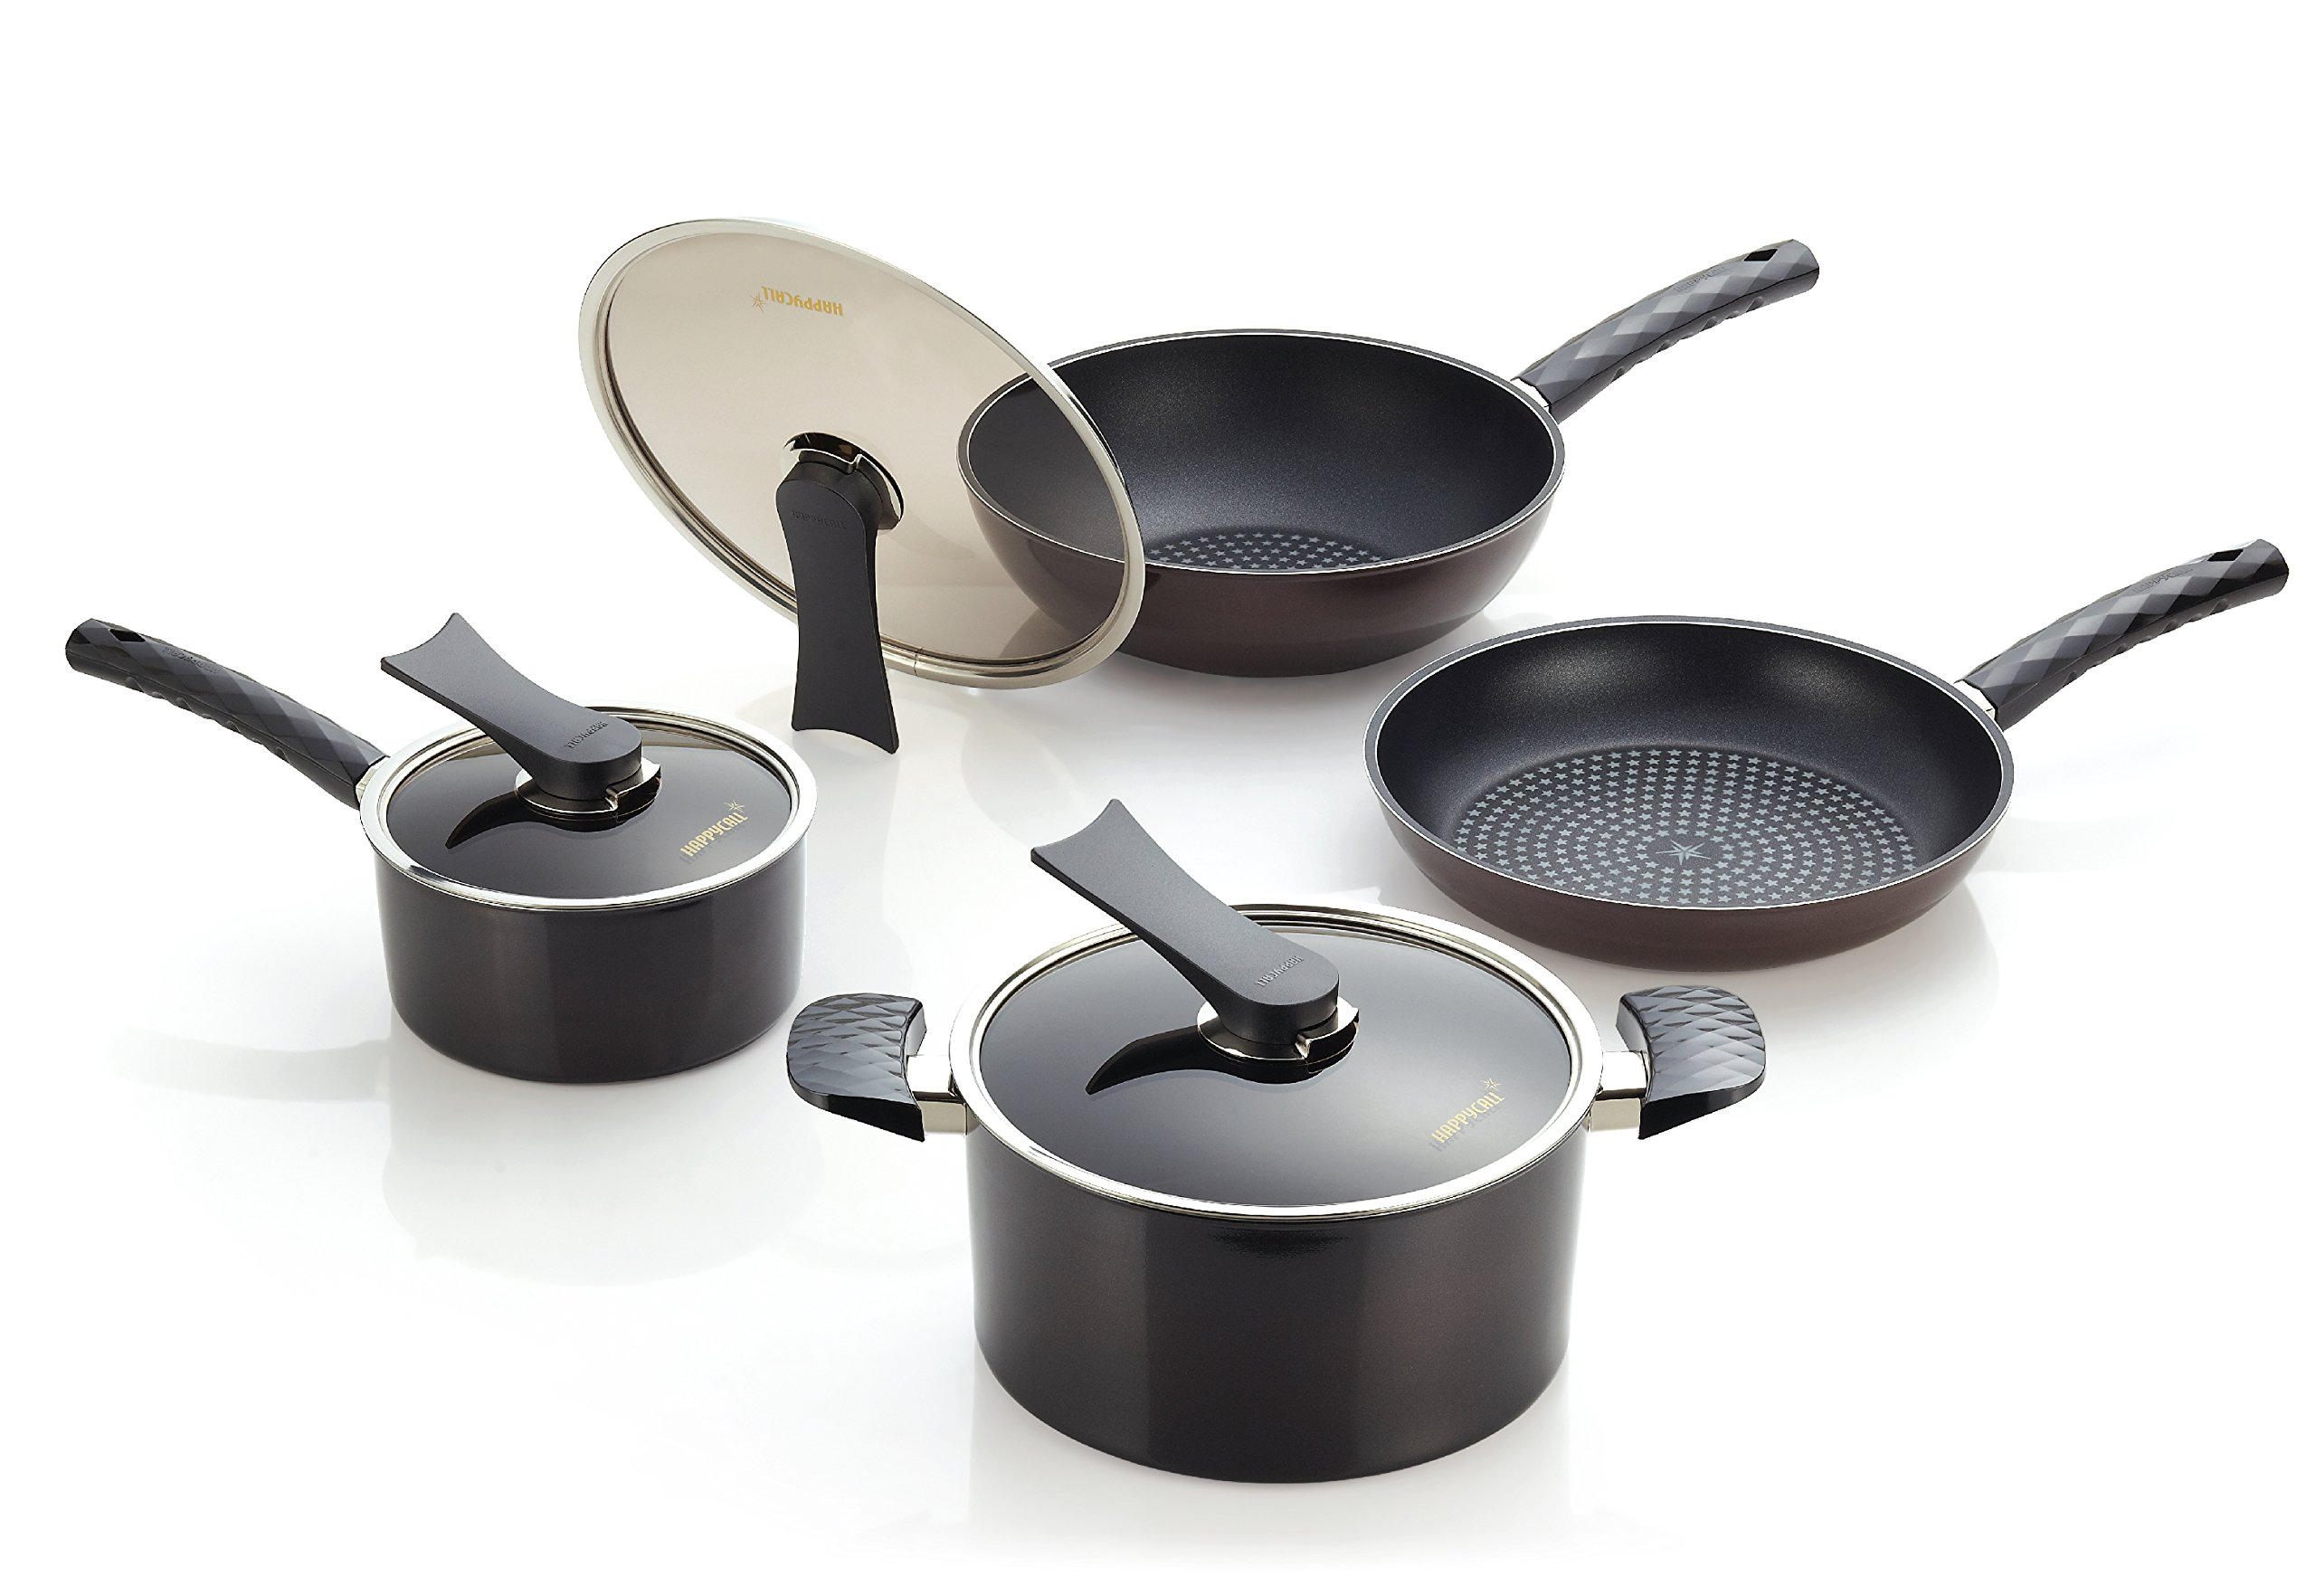 Happycall Everyday Cookware Set, 7 Pieces, Nonstick Pans and Pots, PFOA-Free, Dark Brown